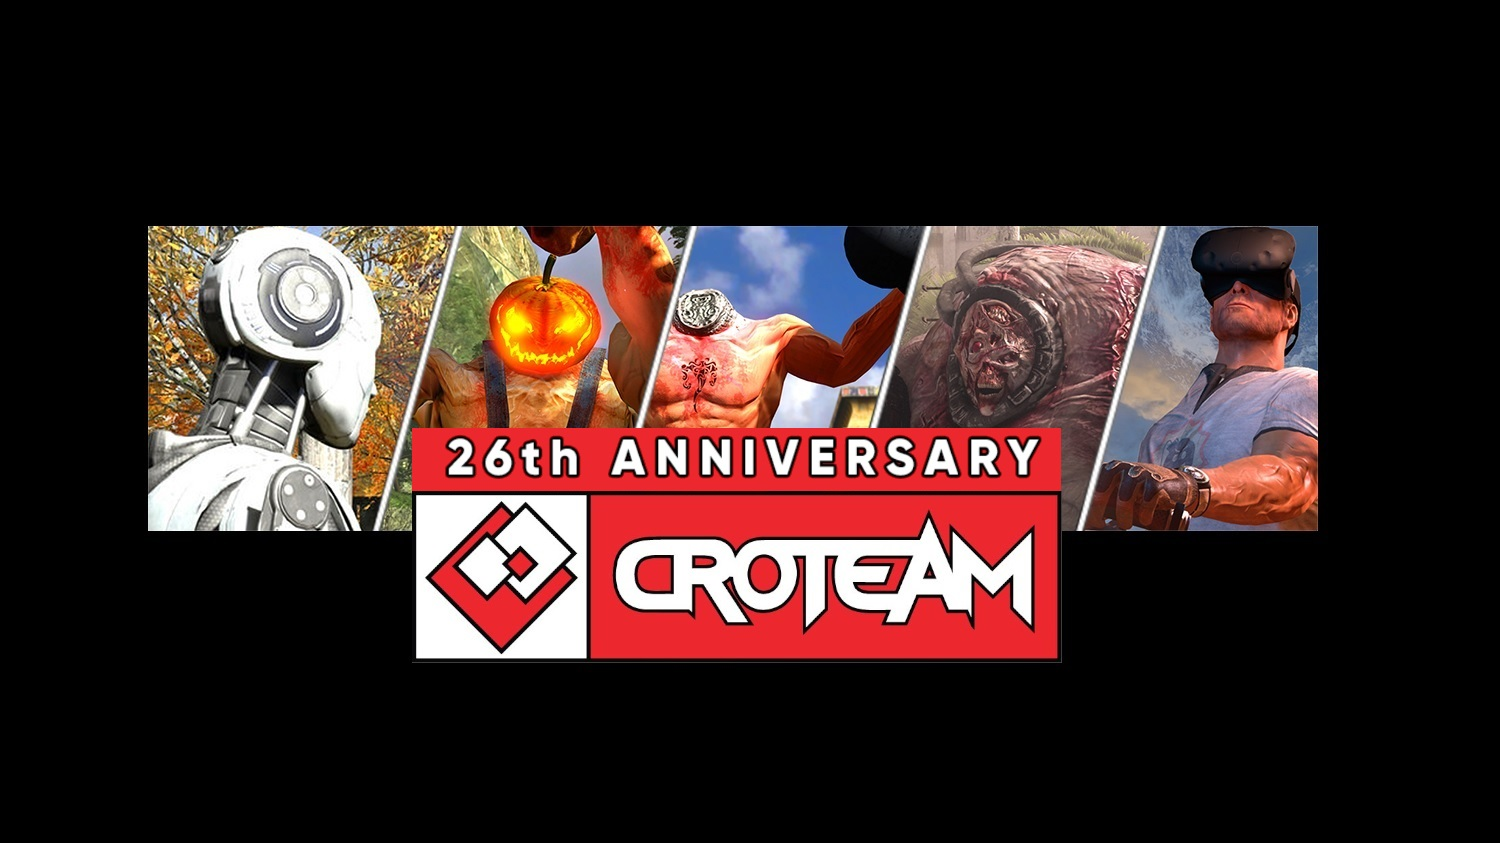 Croteam VR 26 ans